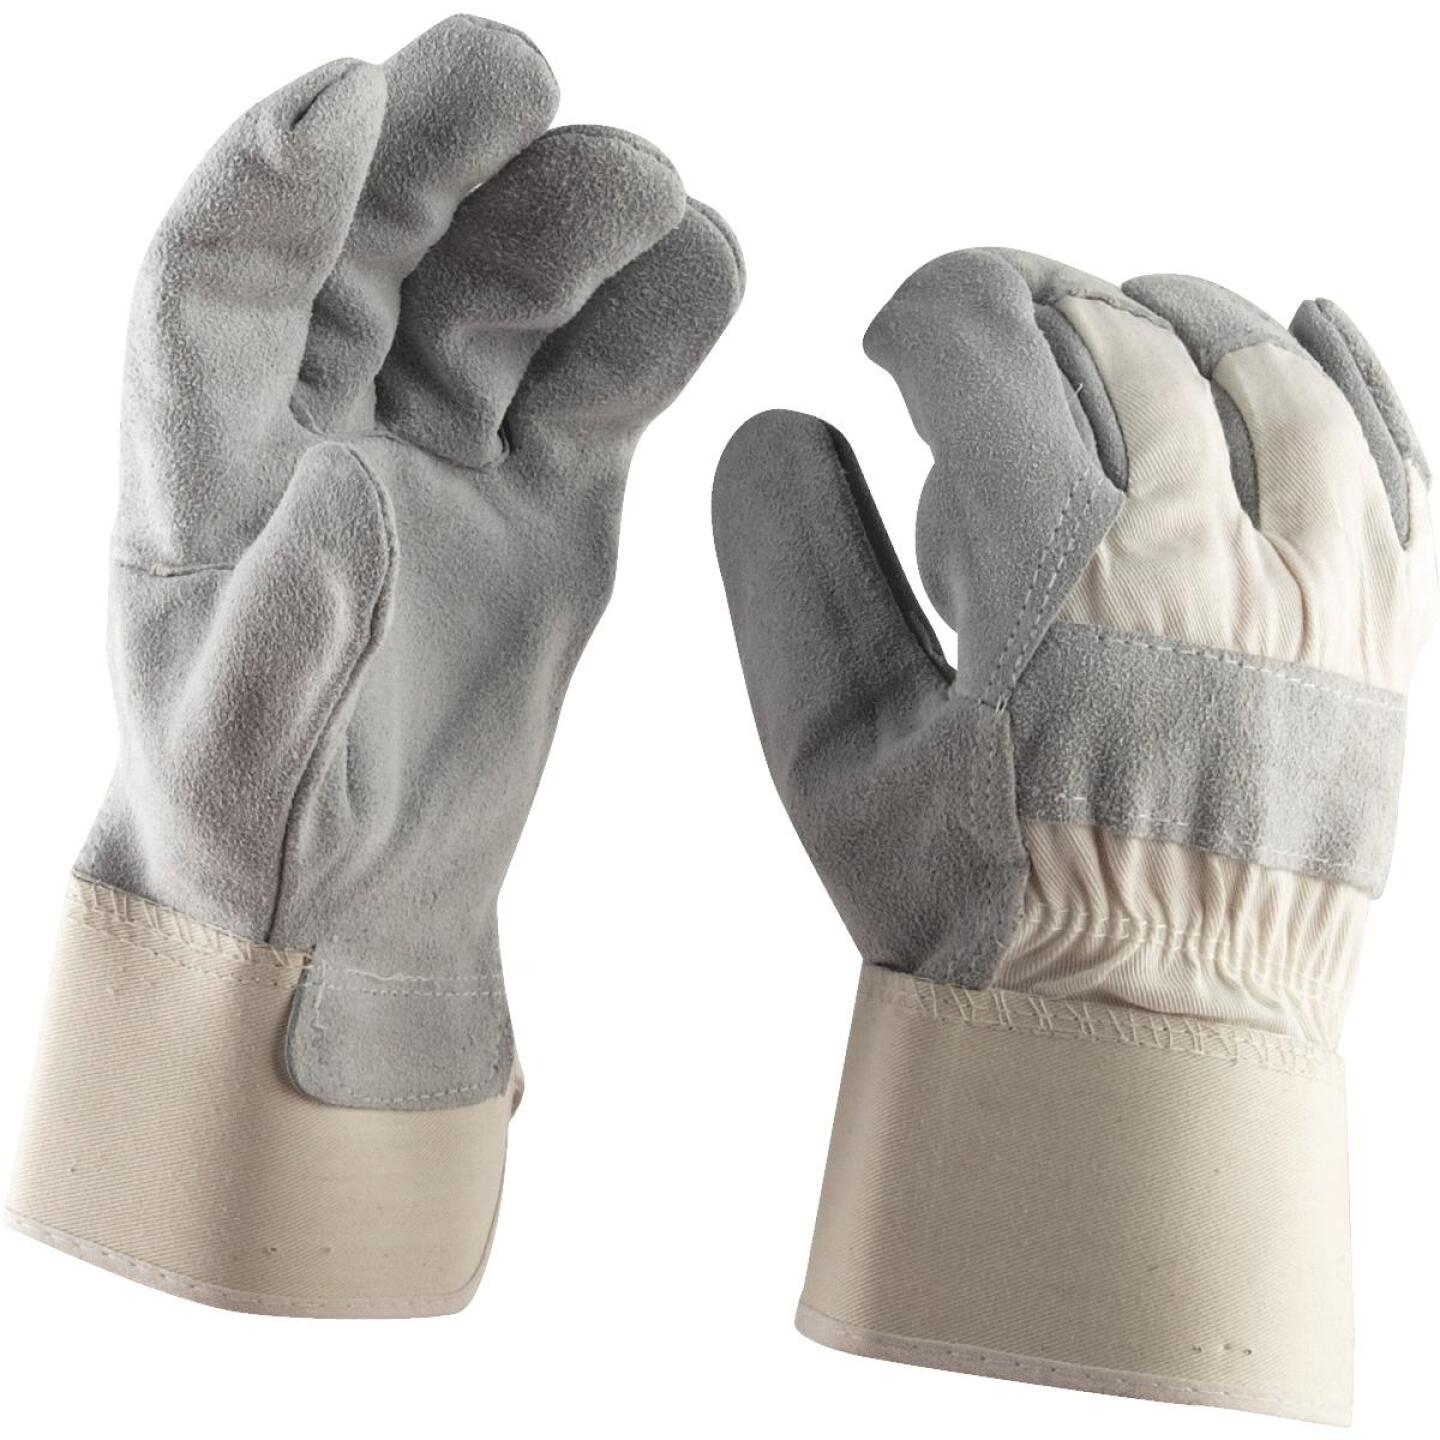 Do it Men's Large Leather Work Glove Image 2